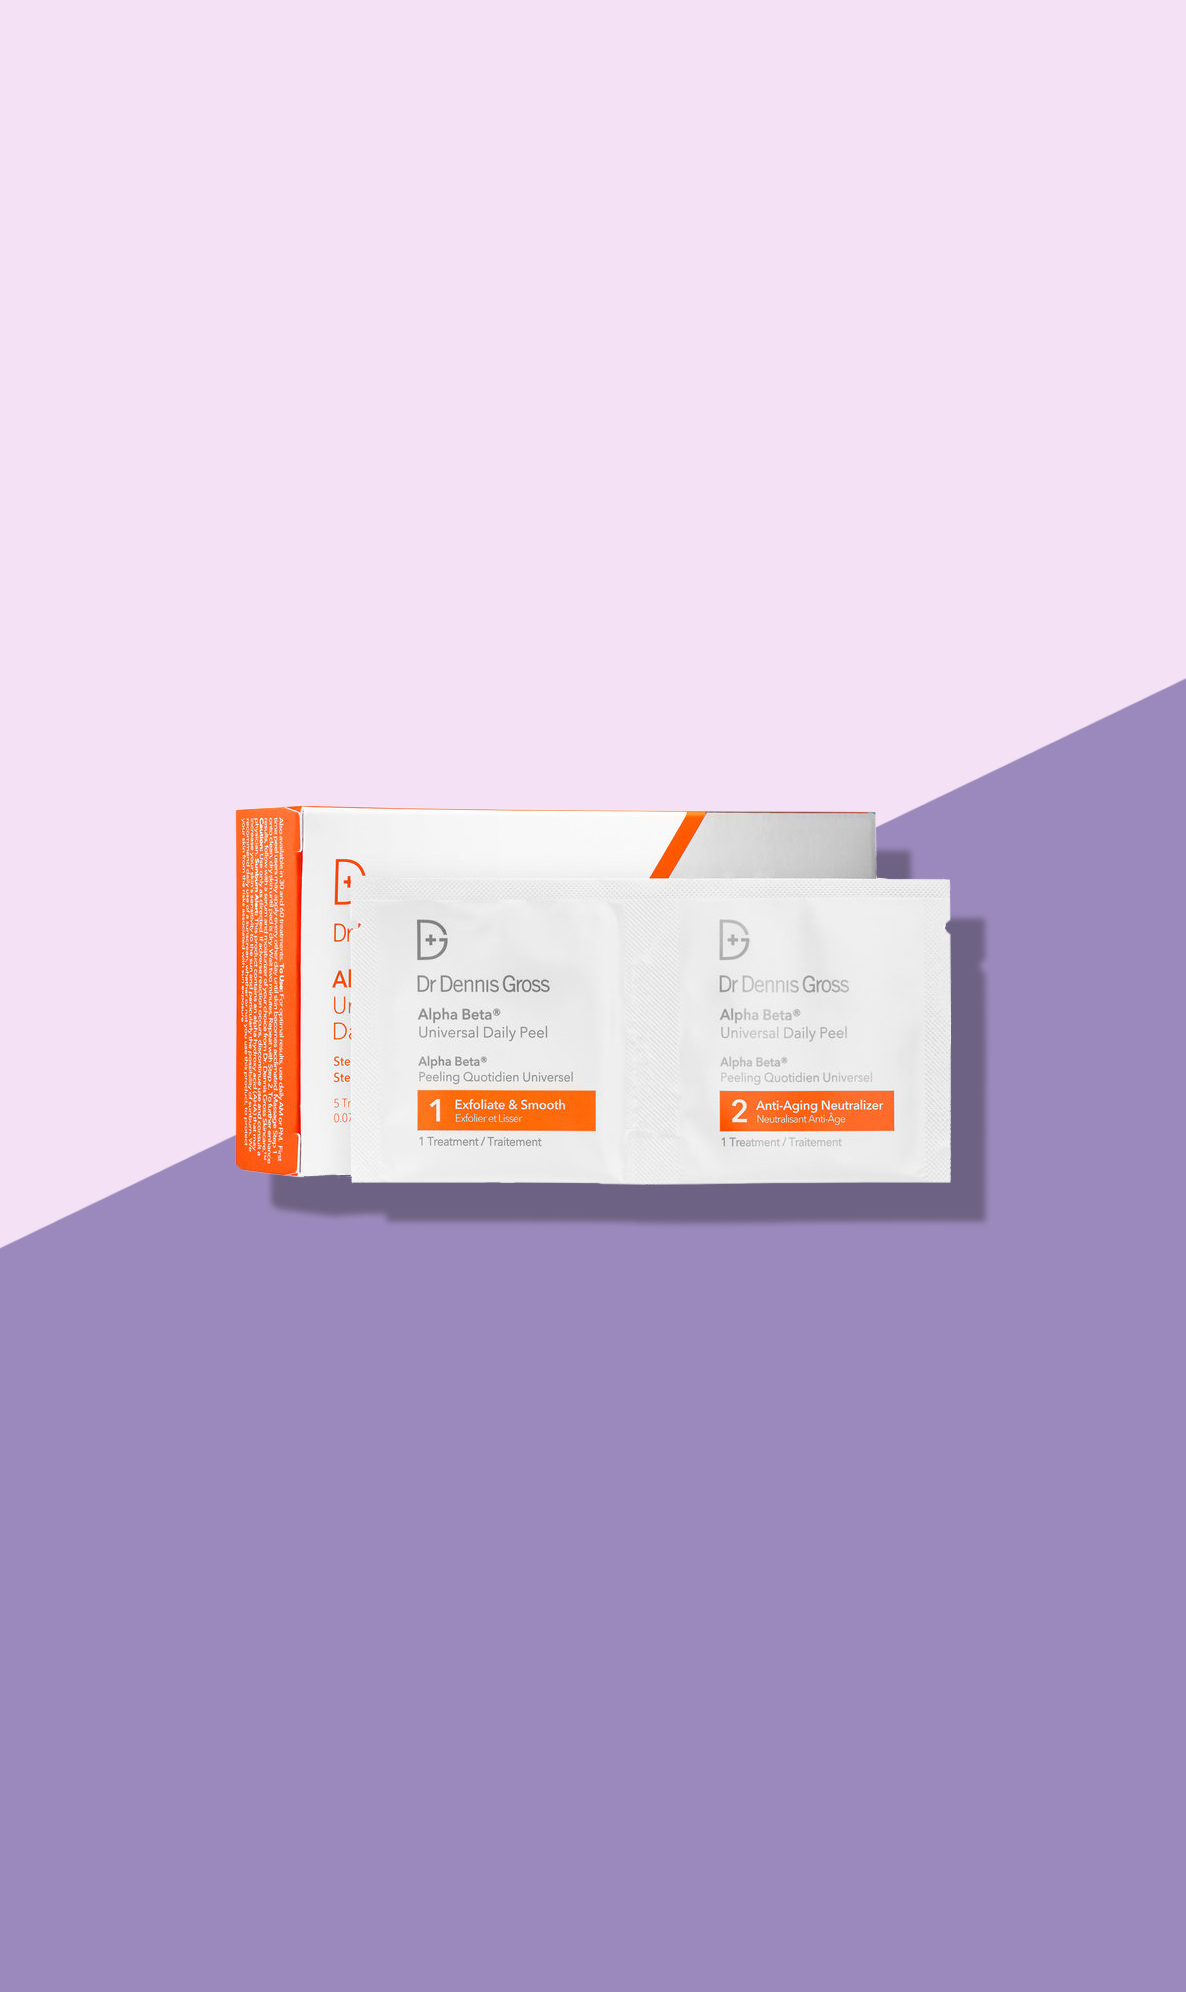 The Best Glycolic Acid Pads For Quick and Easy At-Home Exfoliation